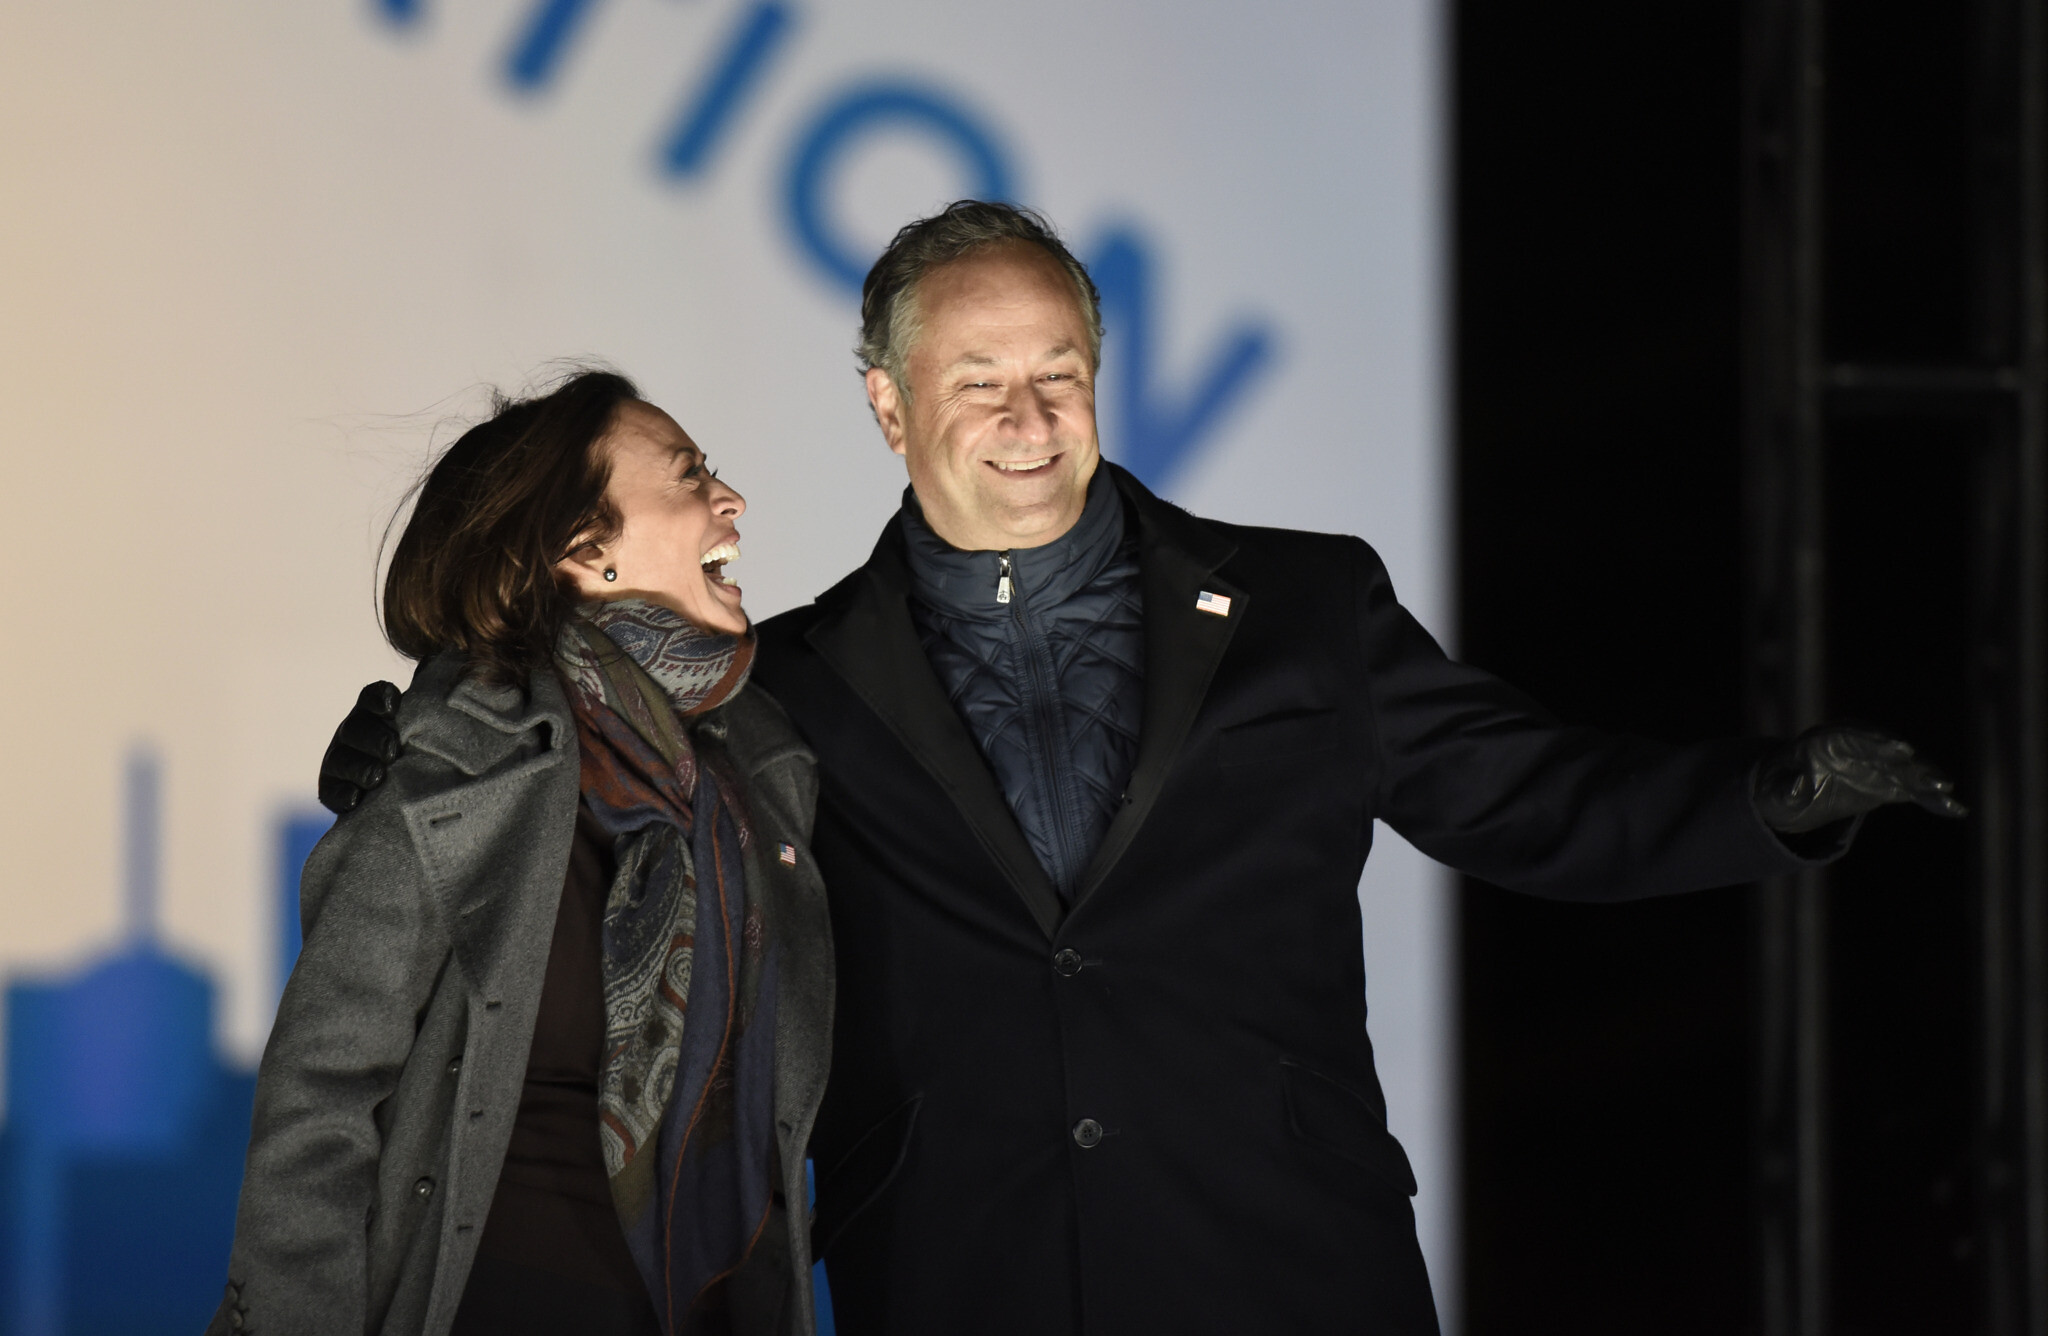 Harris S Jewish Spouse To Be 1st Second Gentleman Breaks Barriers Of His Own The Times Of Israel